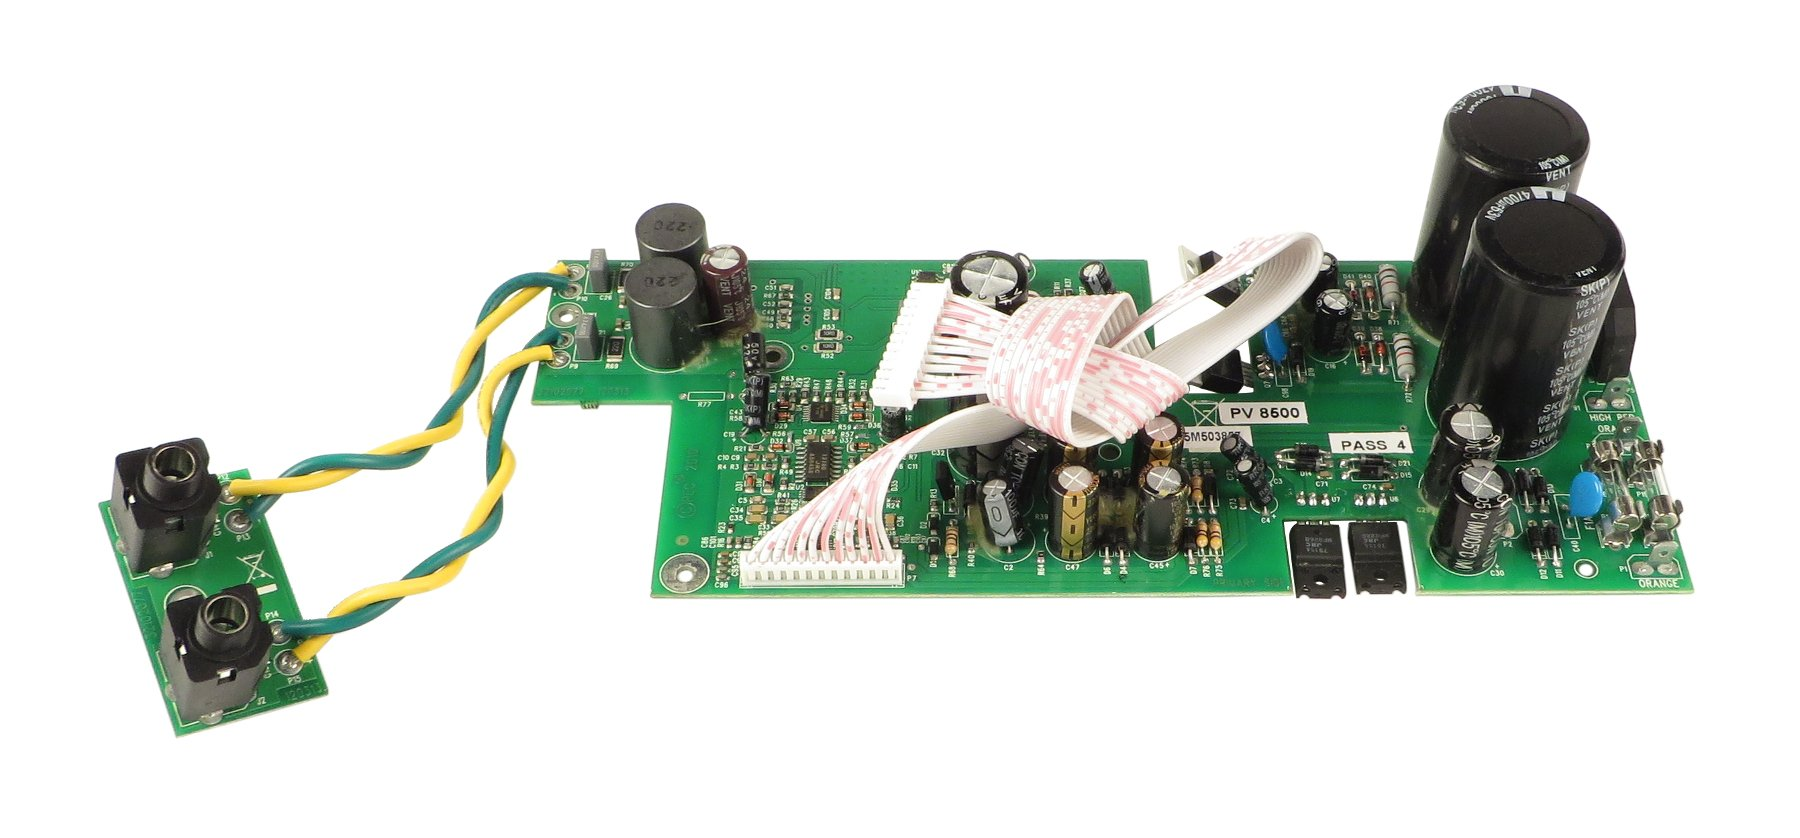 Power Supply Amp PCB for PV8500